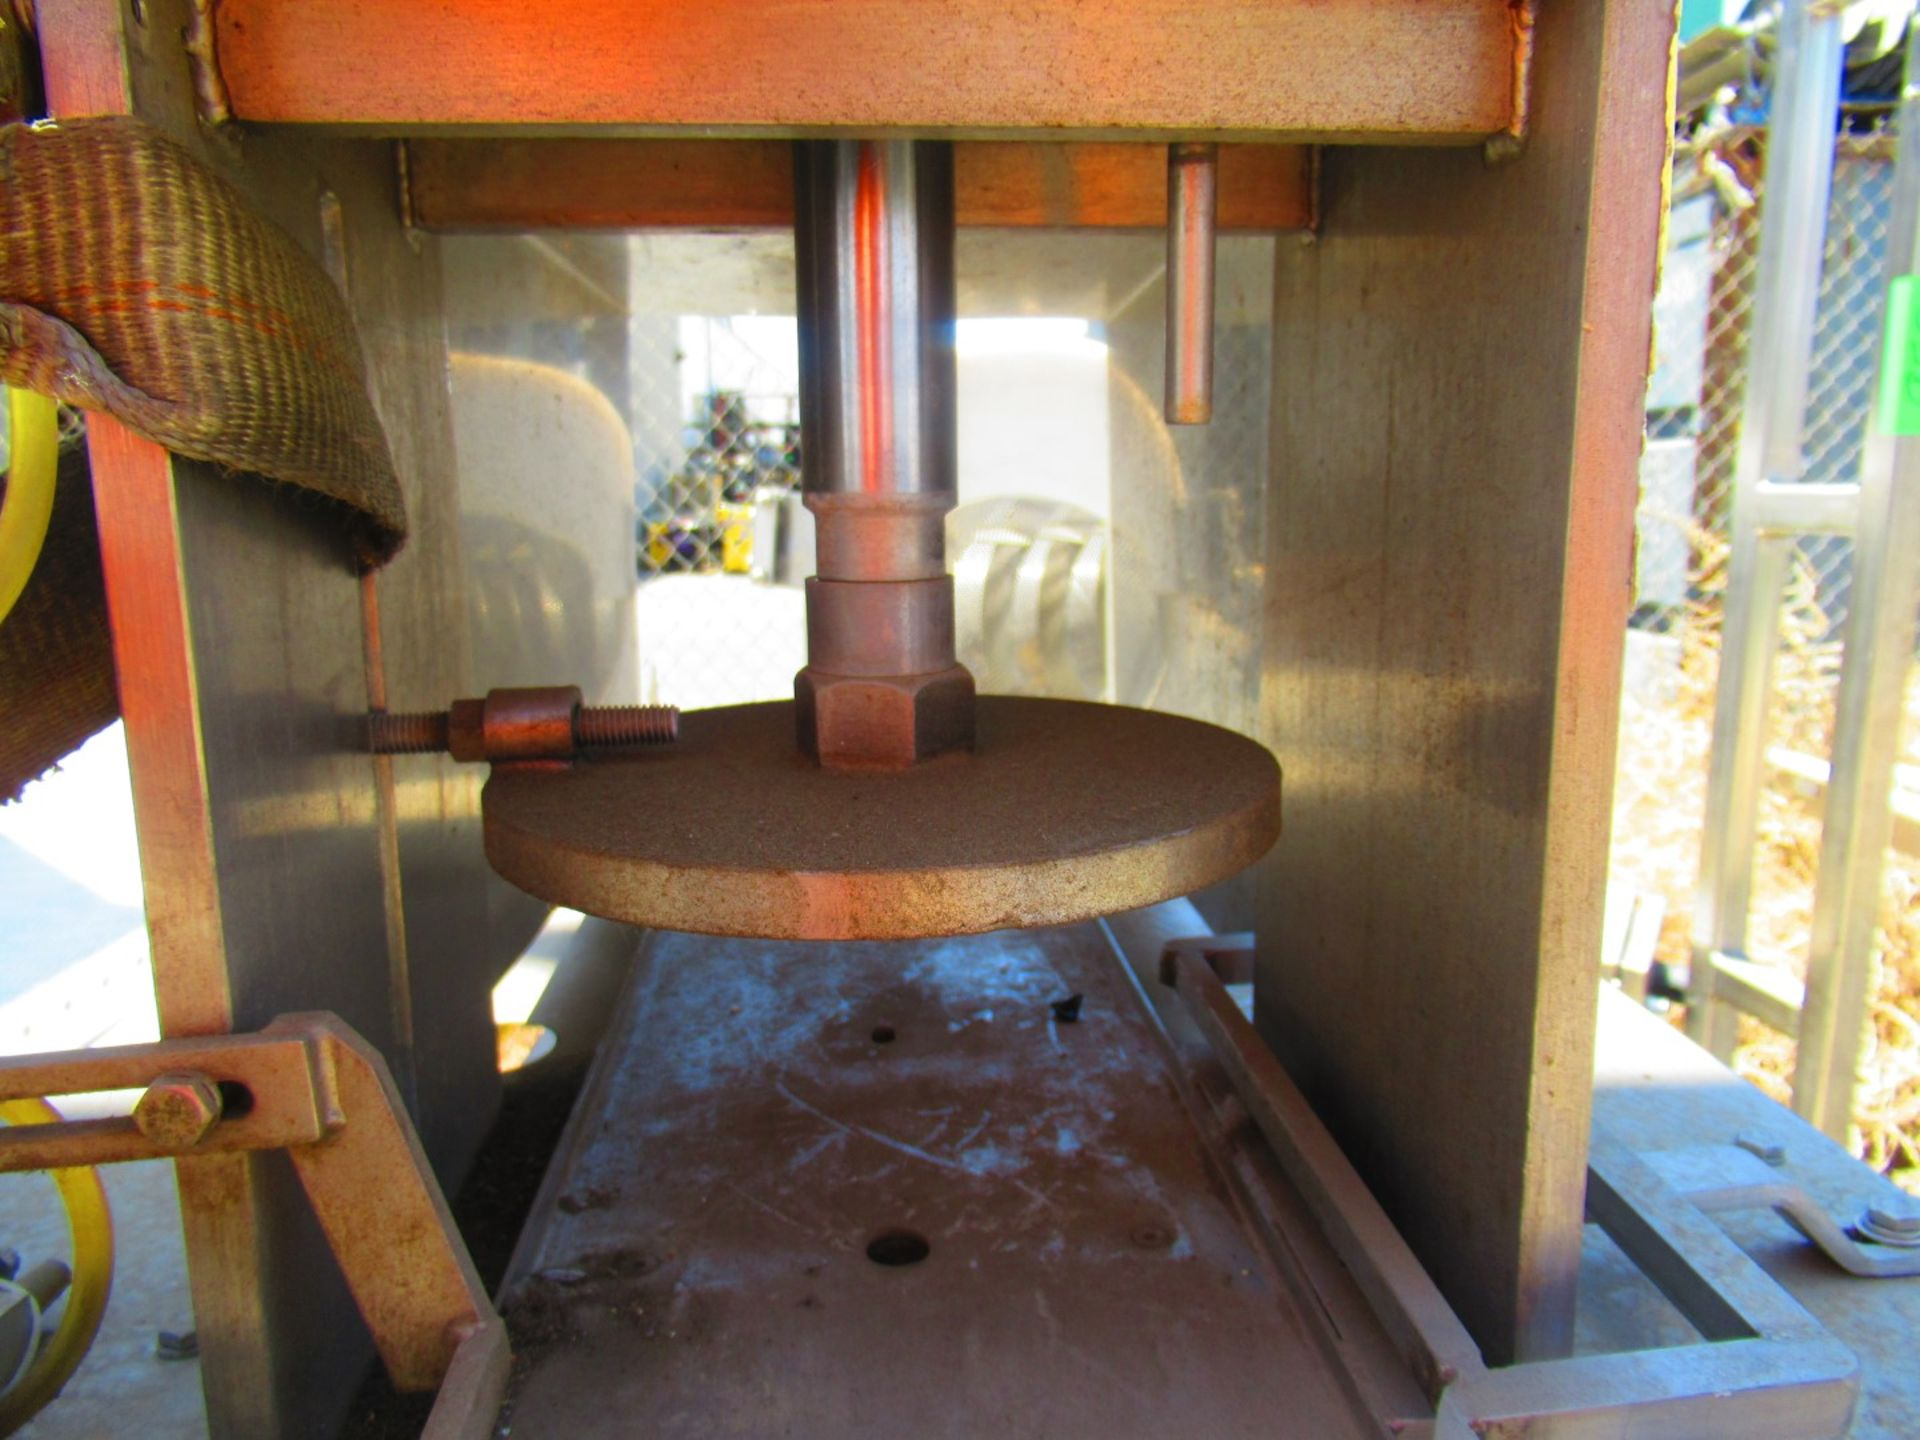 Hydraulic Can Crusher - Image 3 of 6